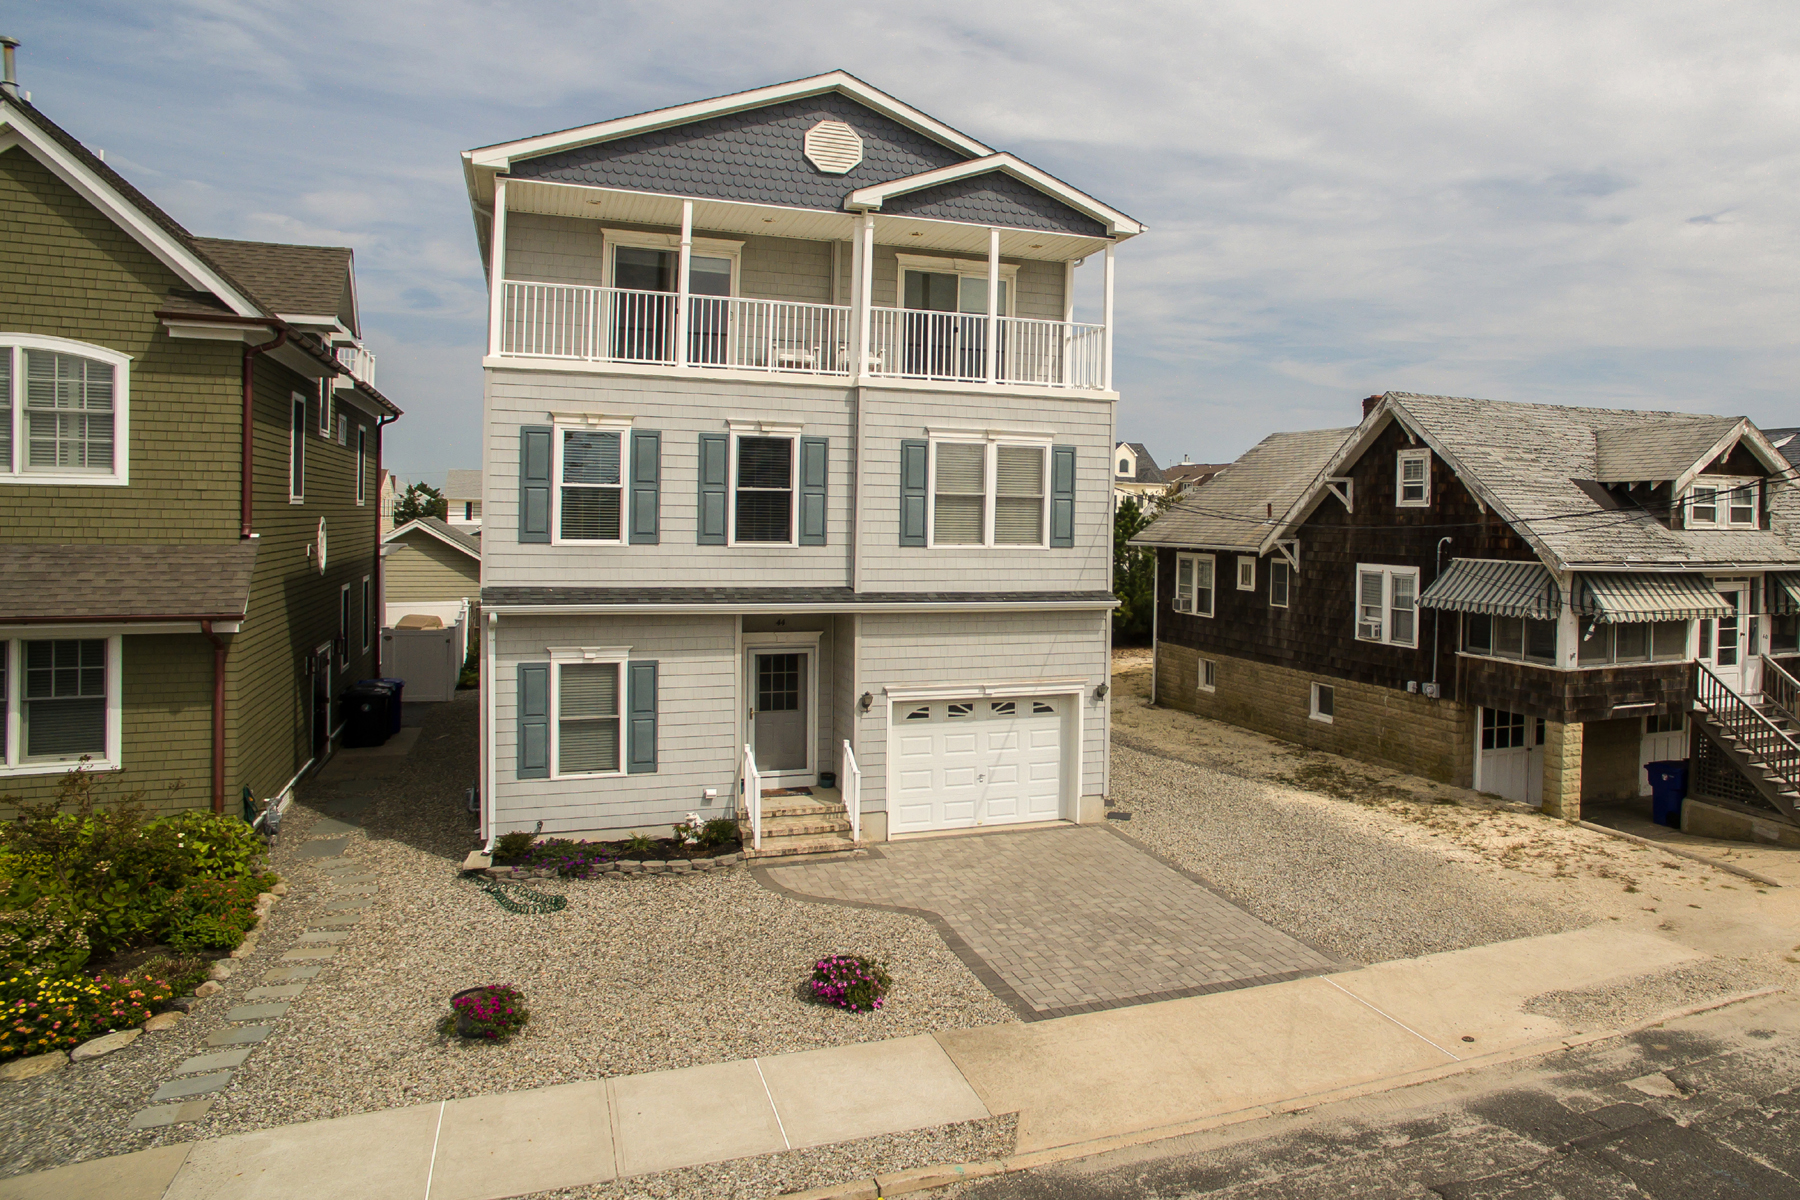 single family homes vì Bán tại Custom Built Ocean Block Home 44 3rd Ave, Lavallette, New Jersey 08735 Hoa Kỳ